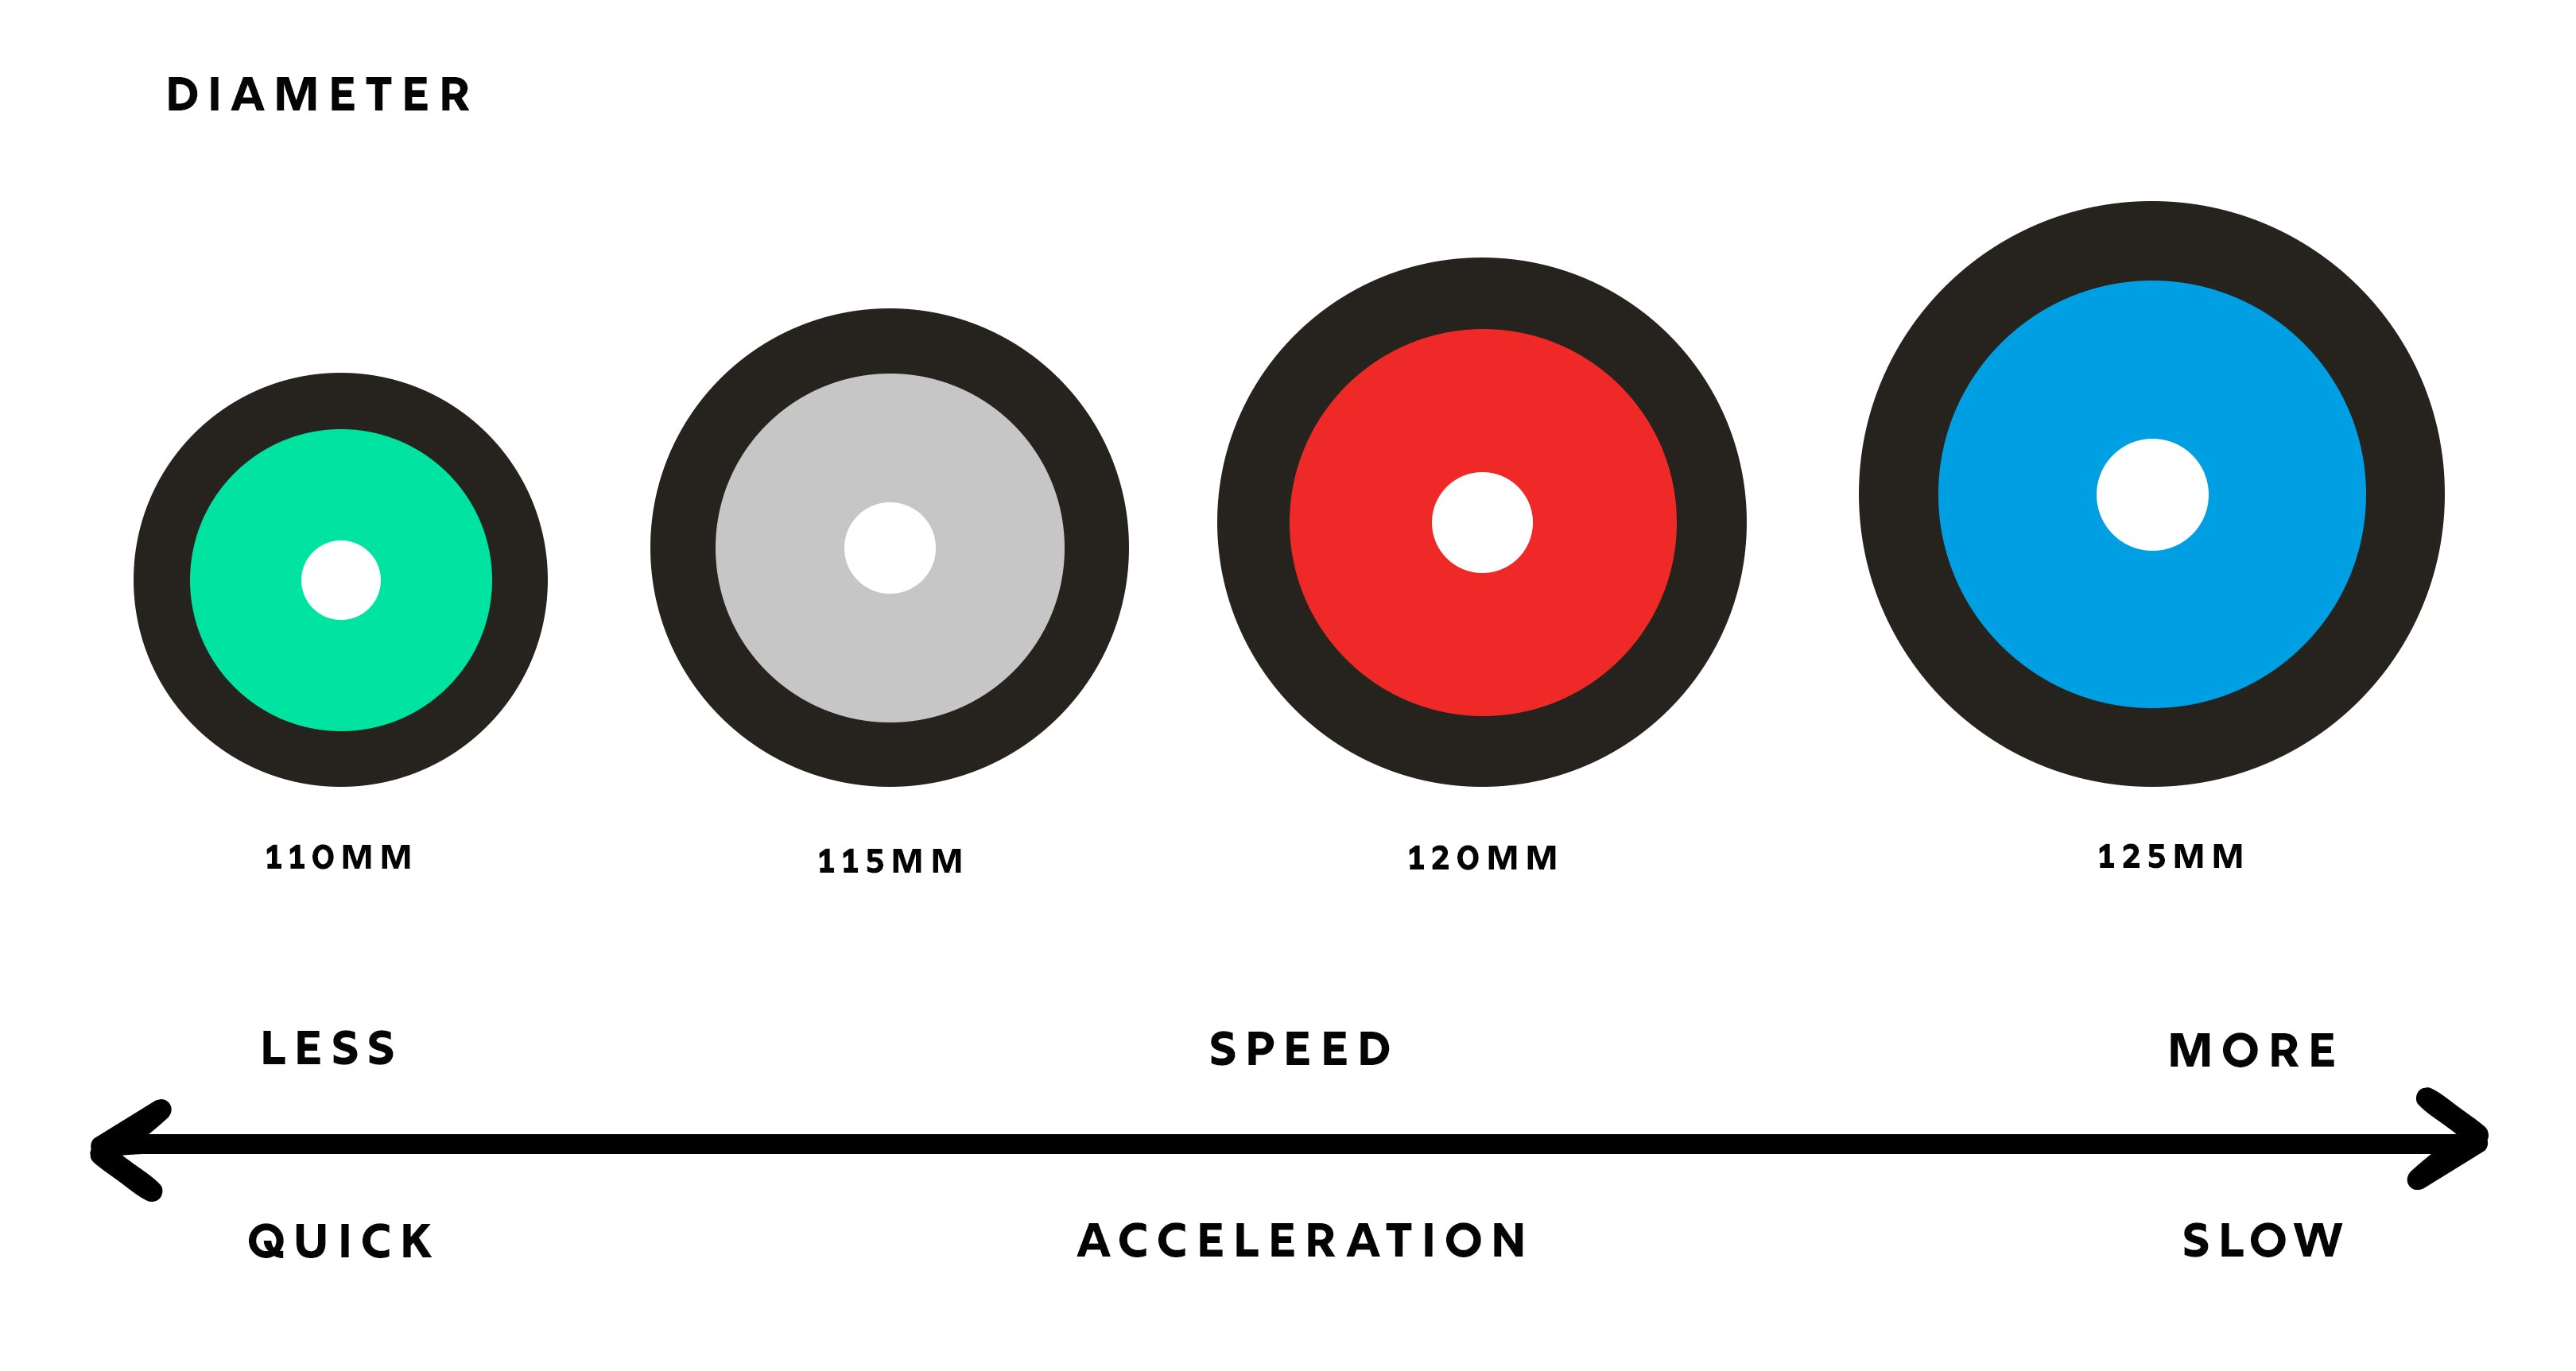 Diagram of Scooter Wheel Diameters at Rideminded